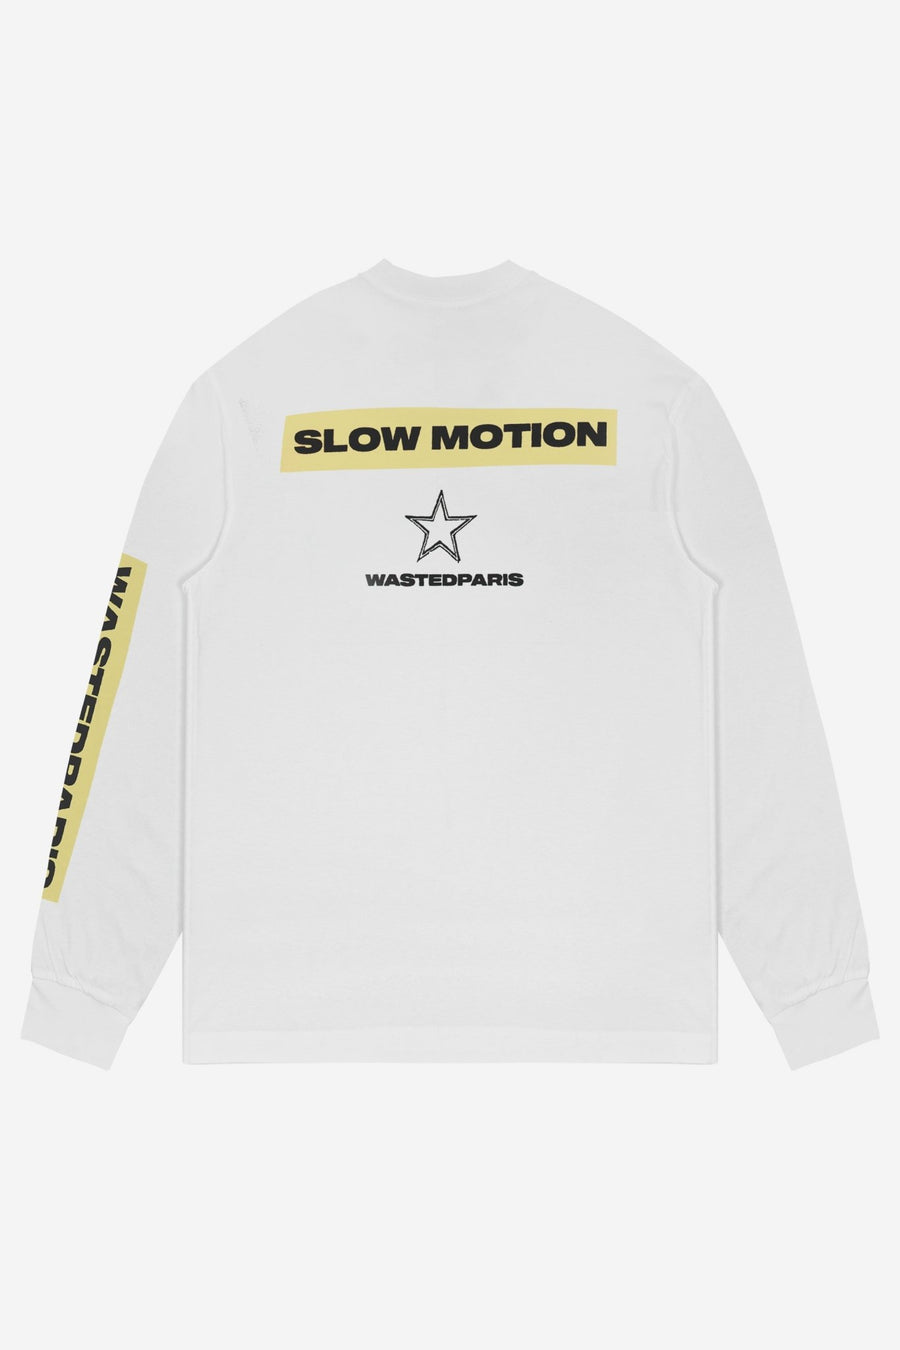 T-shirt Manches Longues Slow Motion - WASTED PARIS